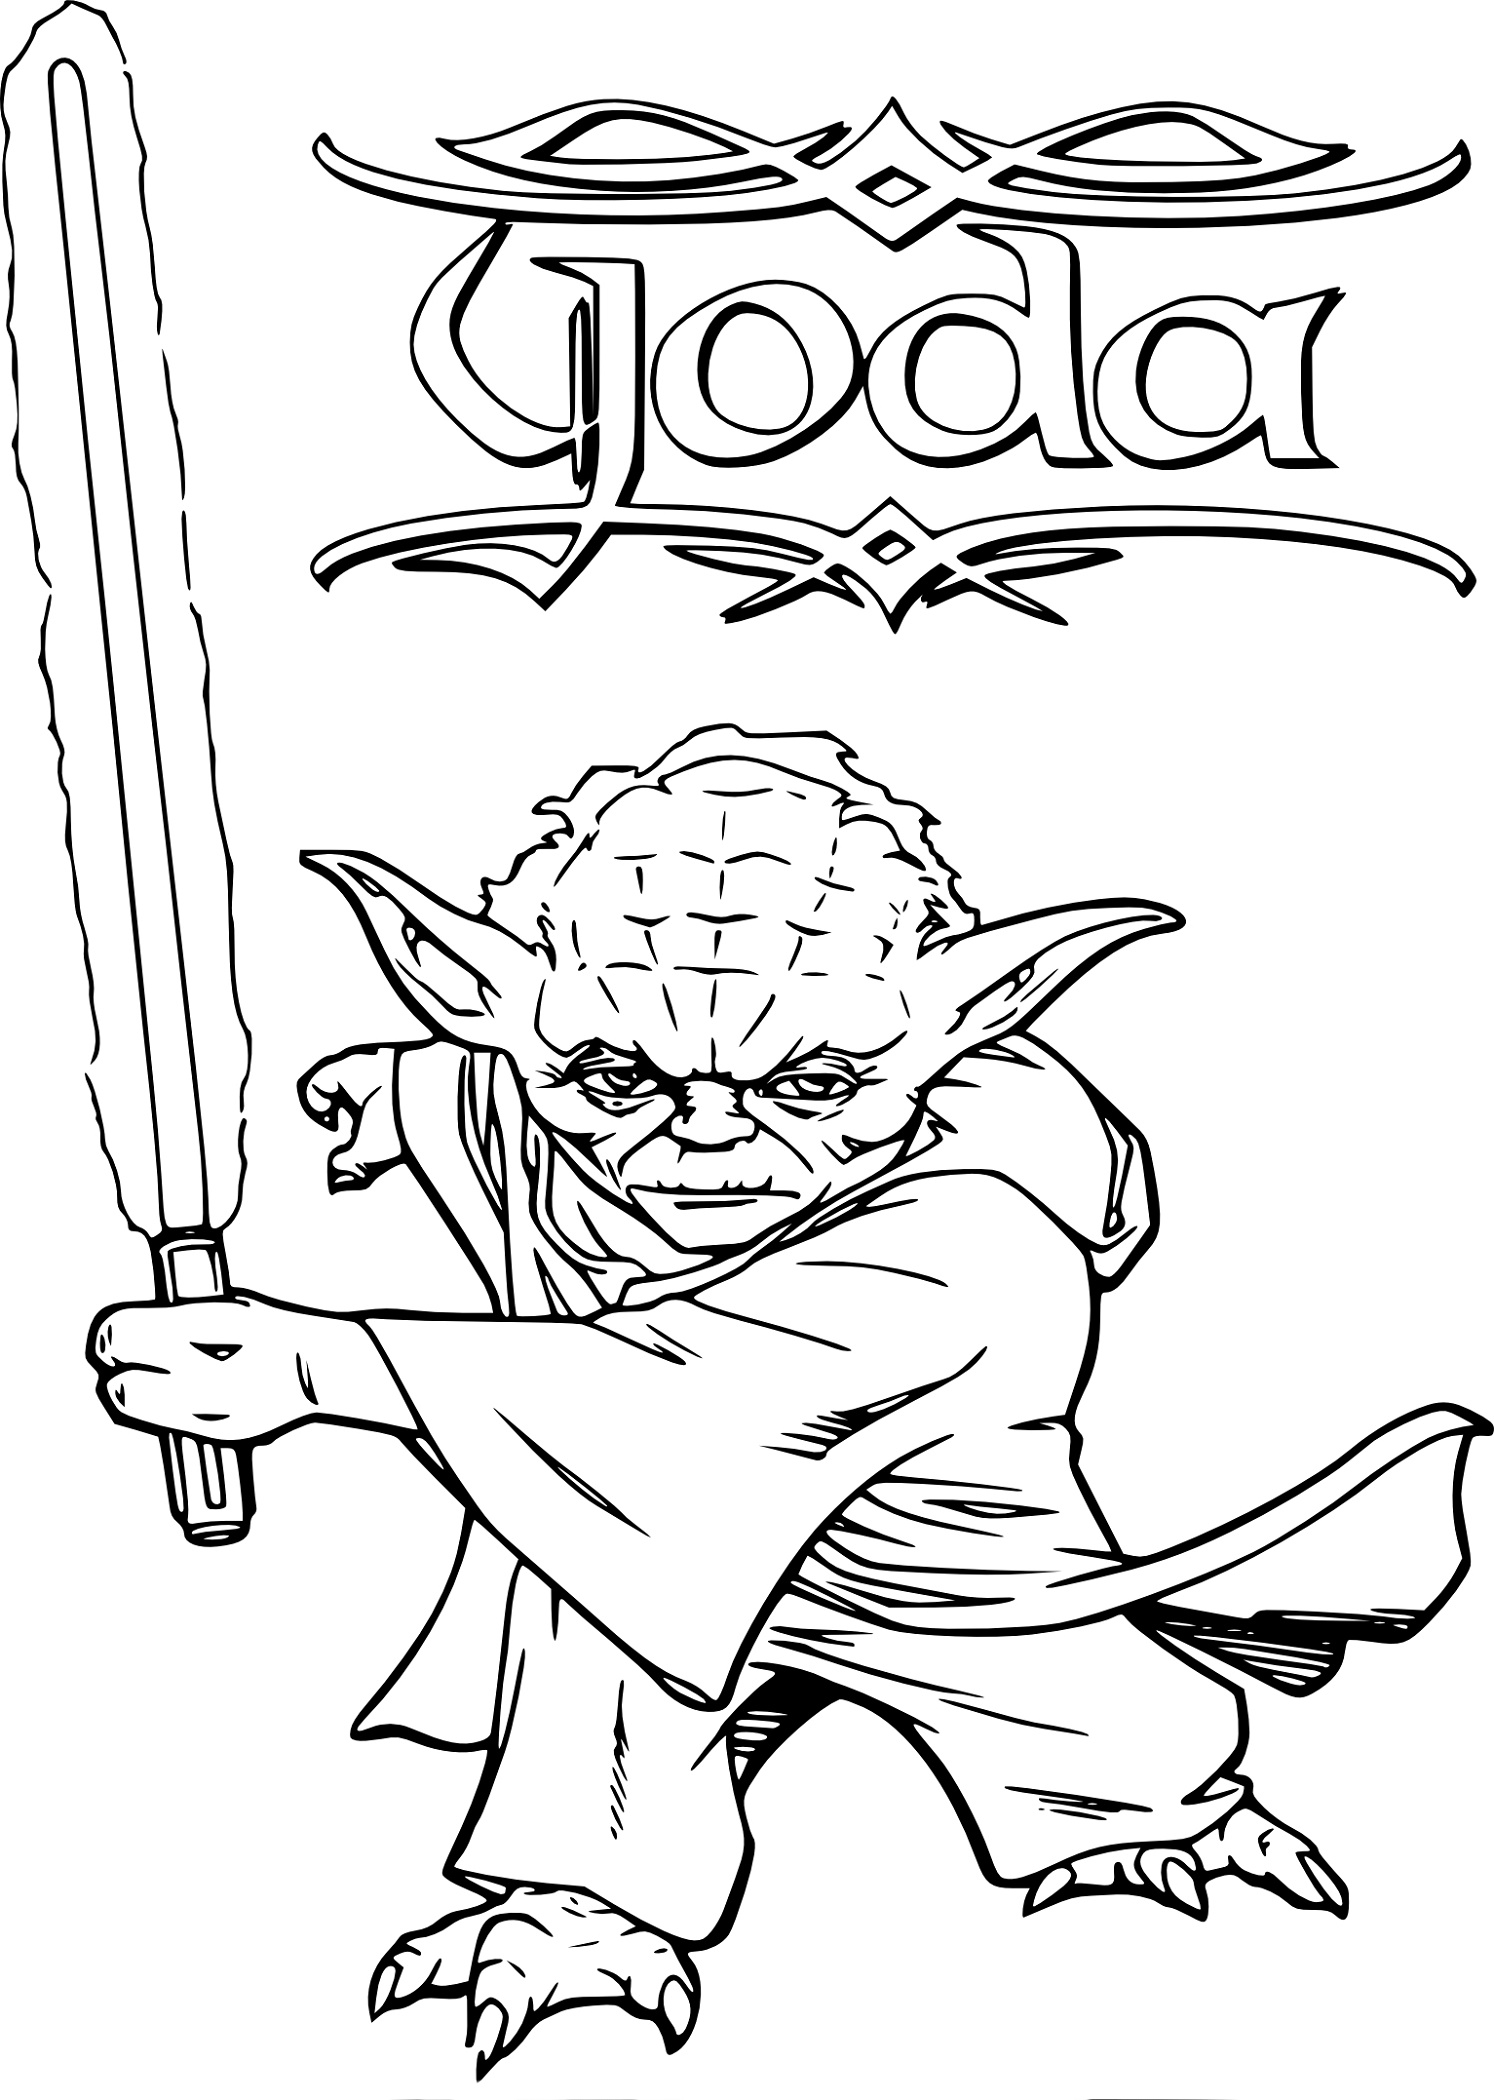 Yoda Coloring Pages With Lightsaber